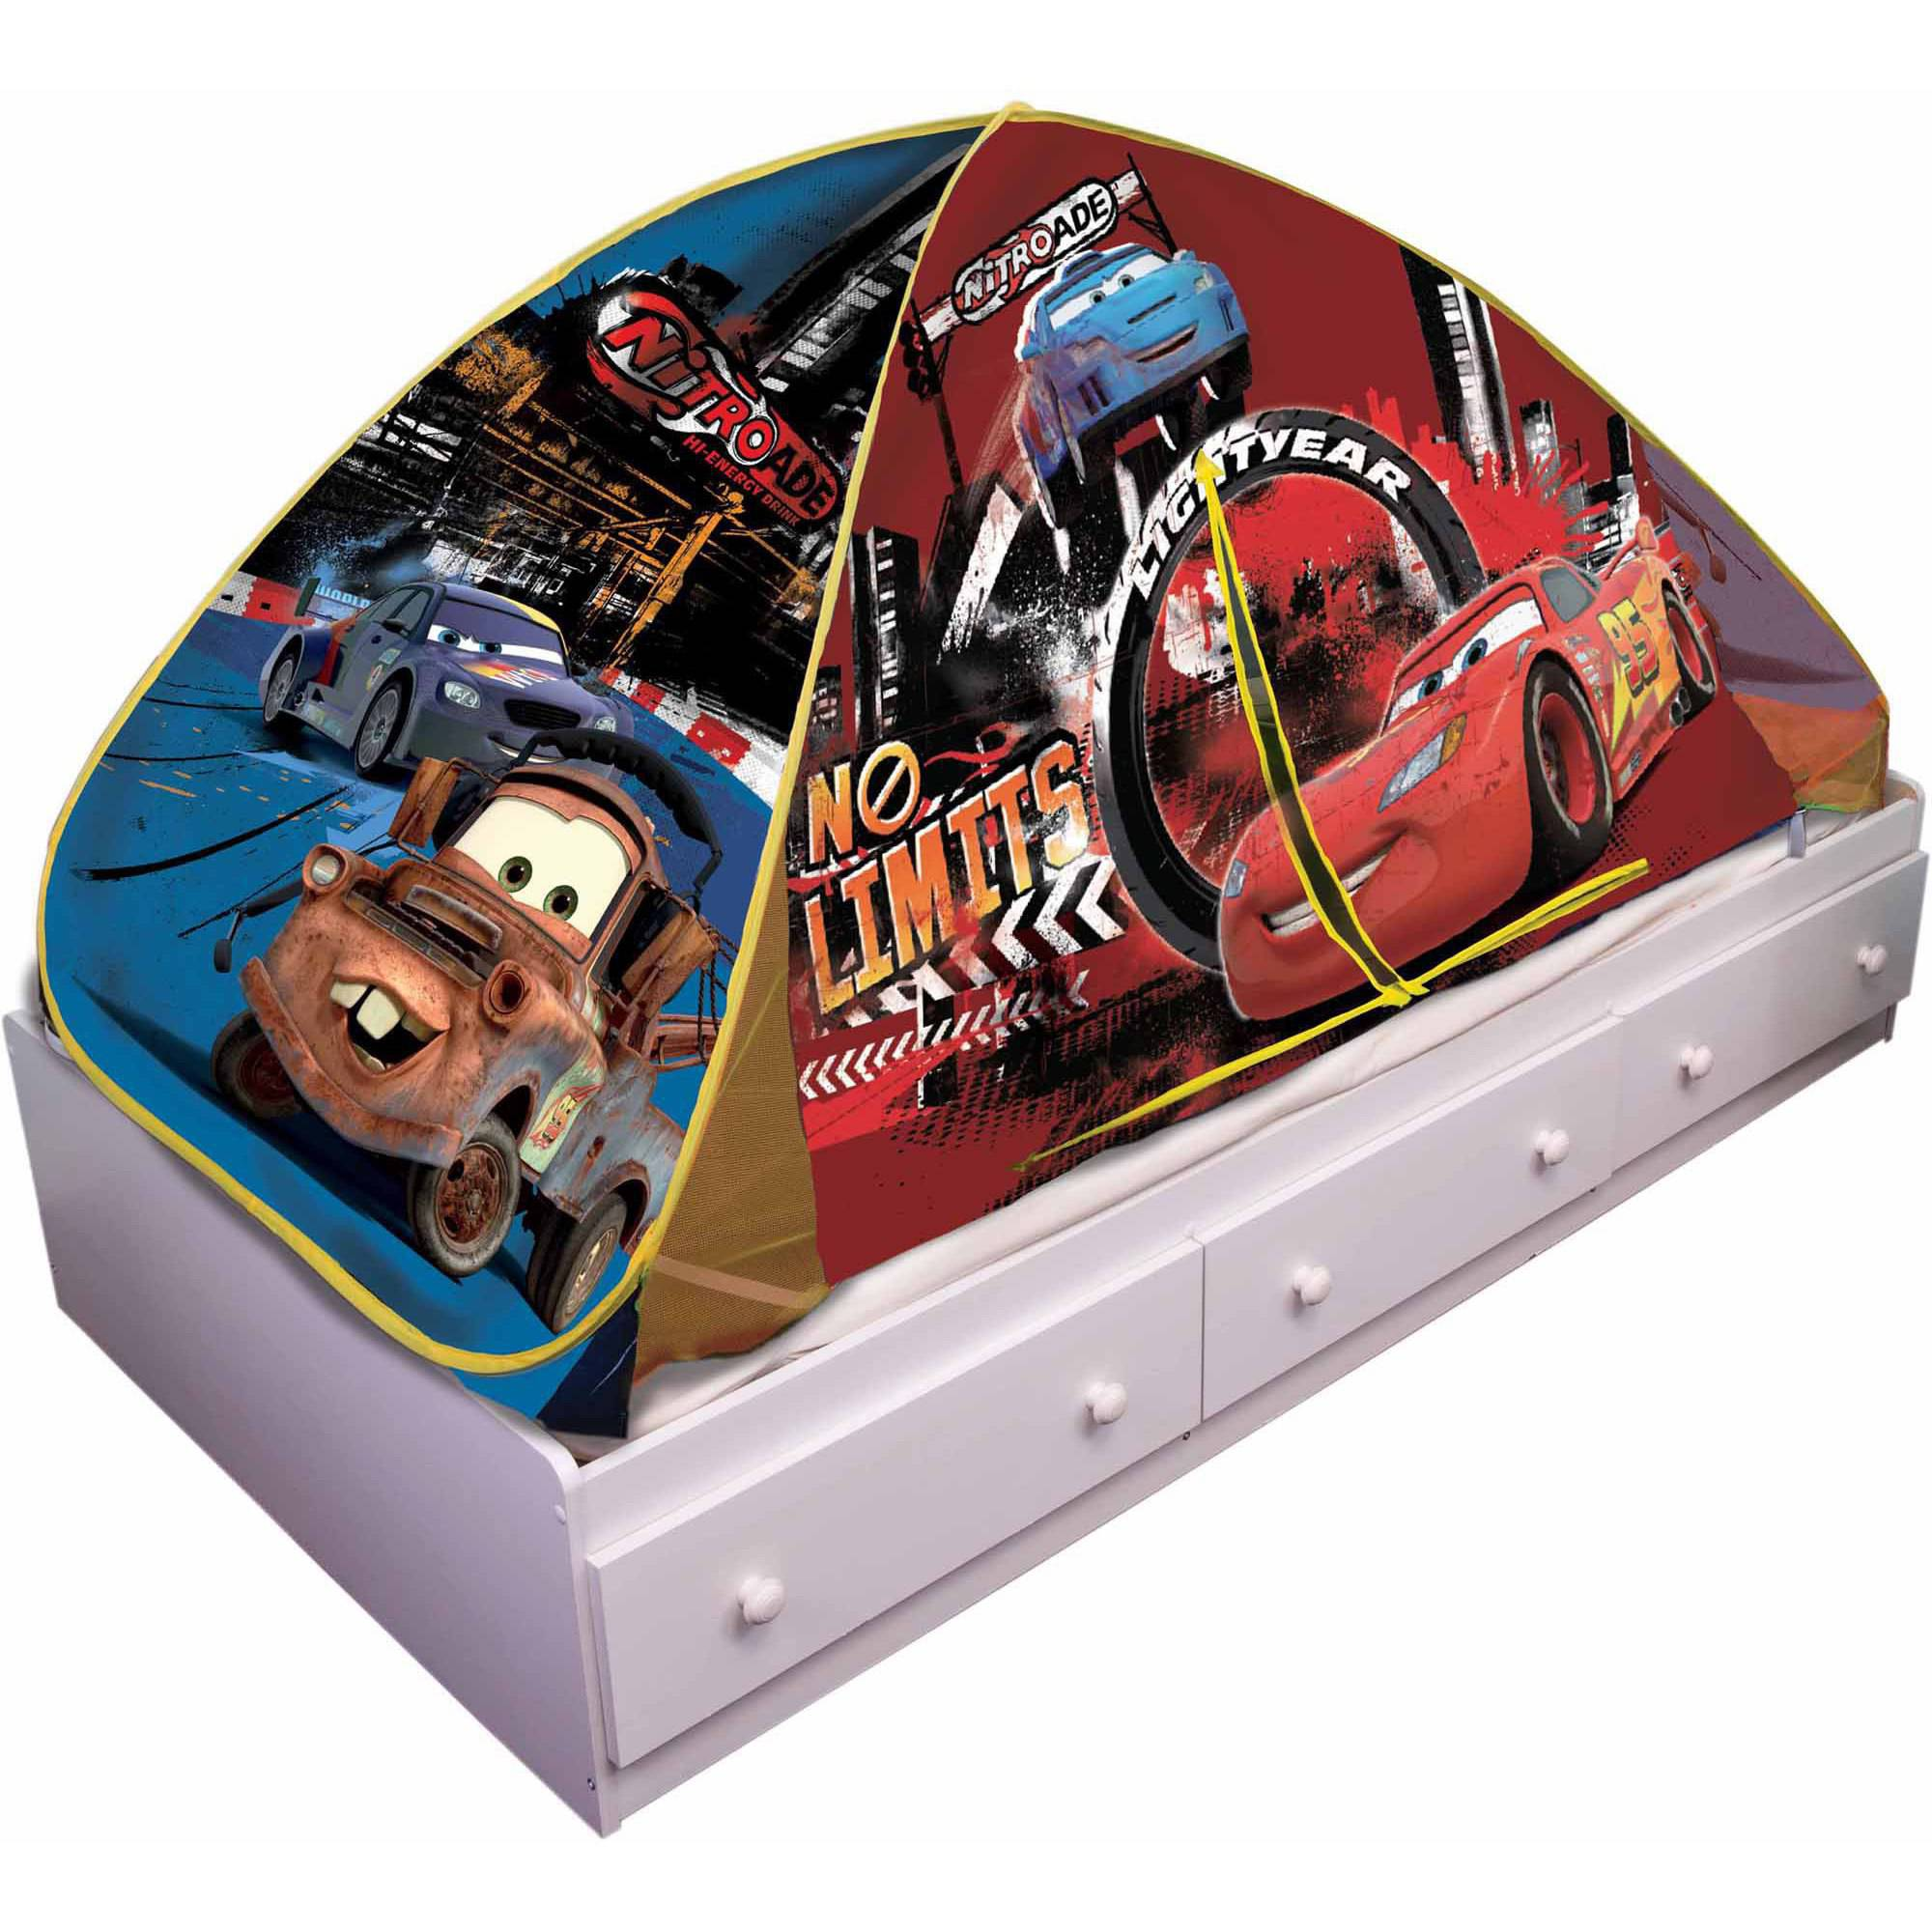 Playhut Disney Cars 2-in-1 Tent